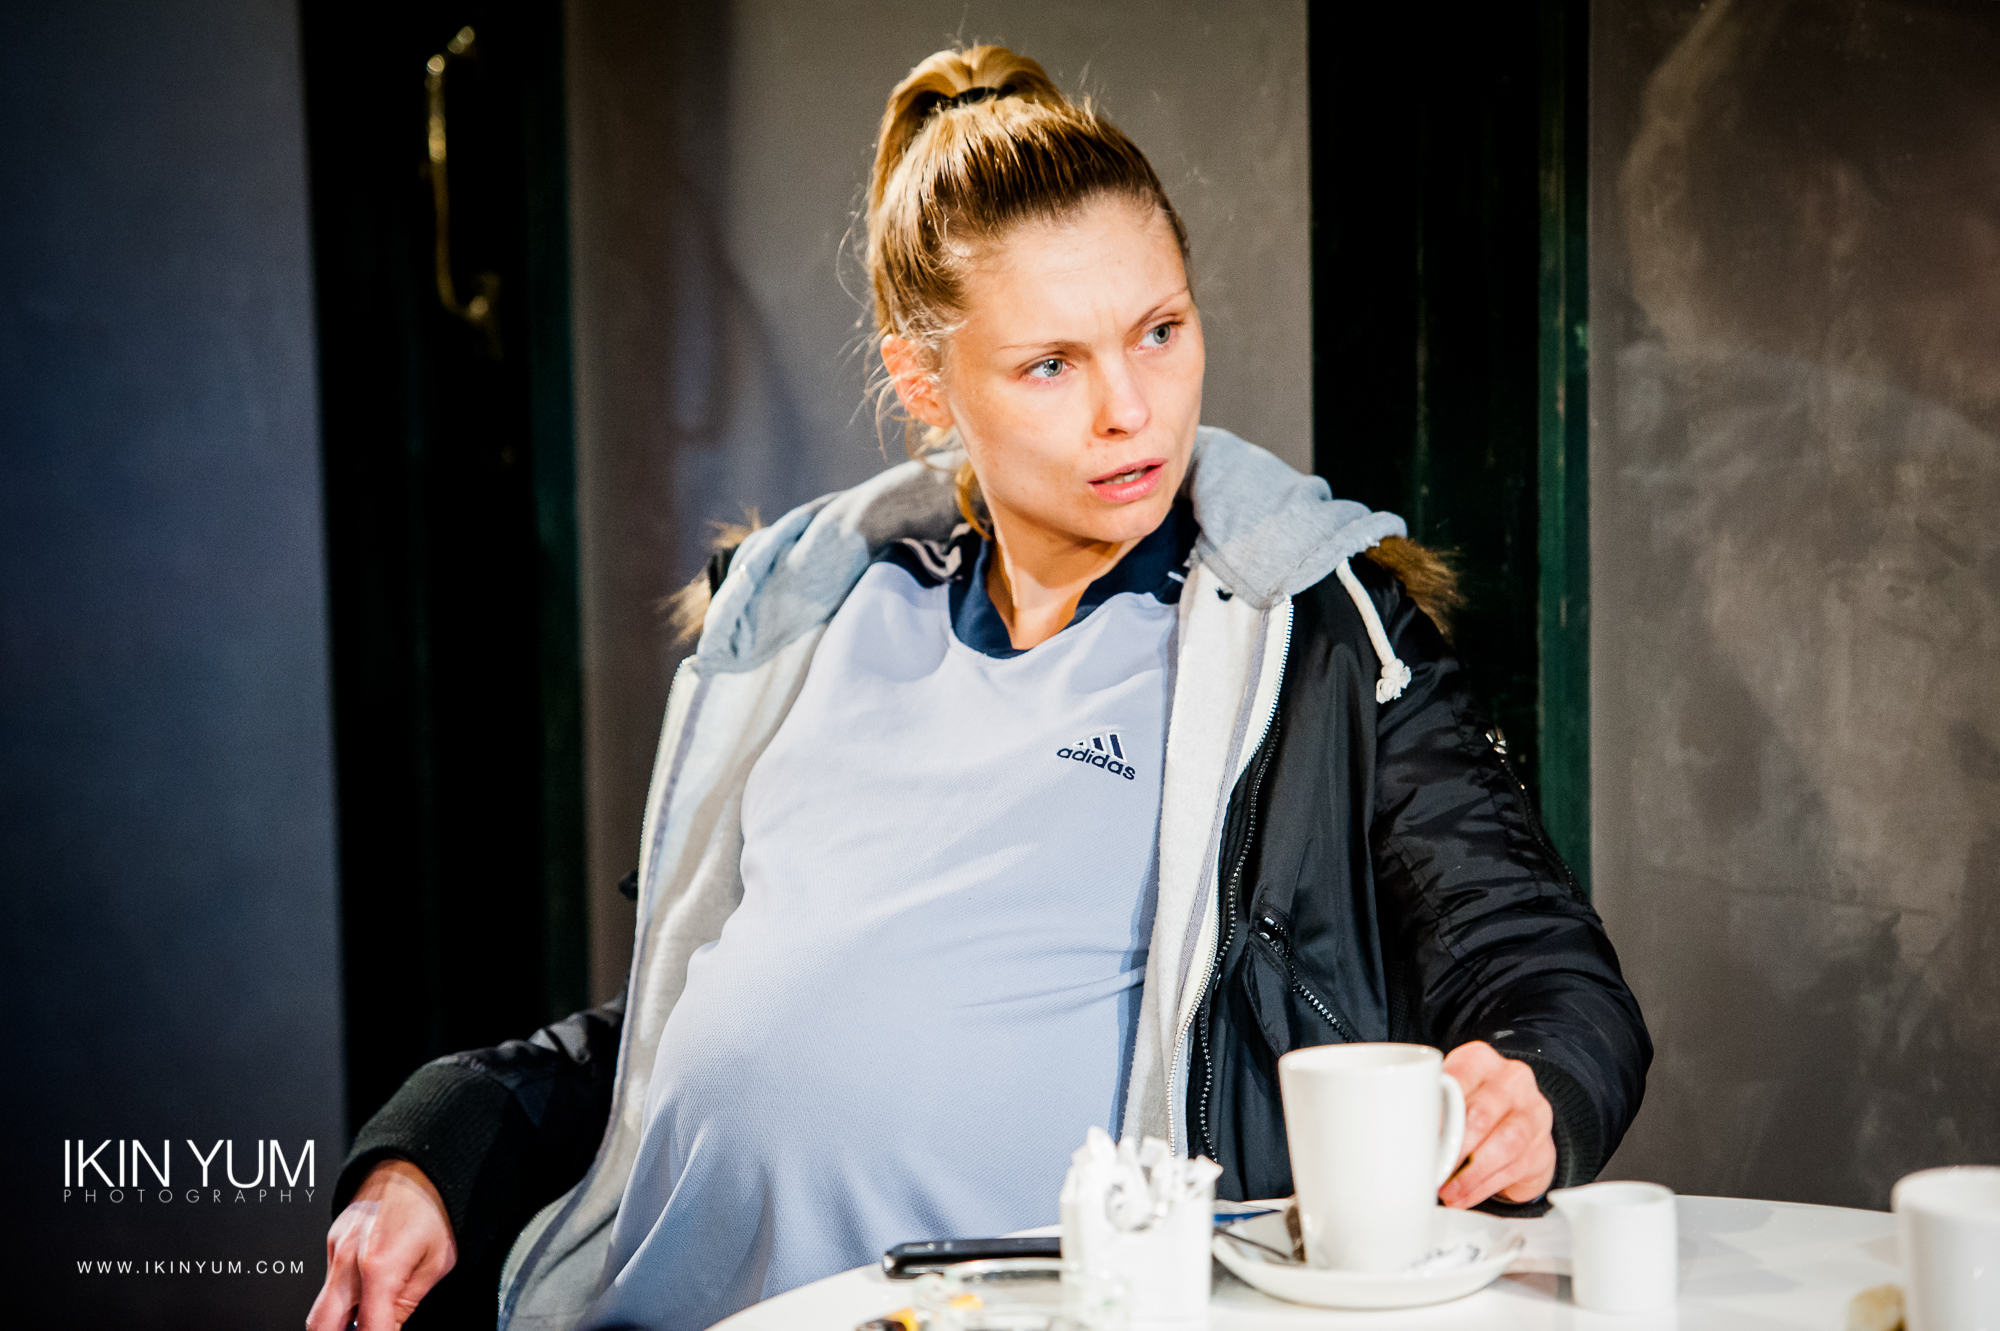 The Wasp - Trafalgar Studios - Ikin Yum Photography-018.jpg